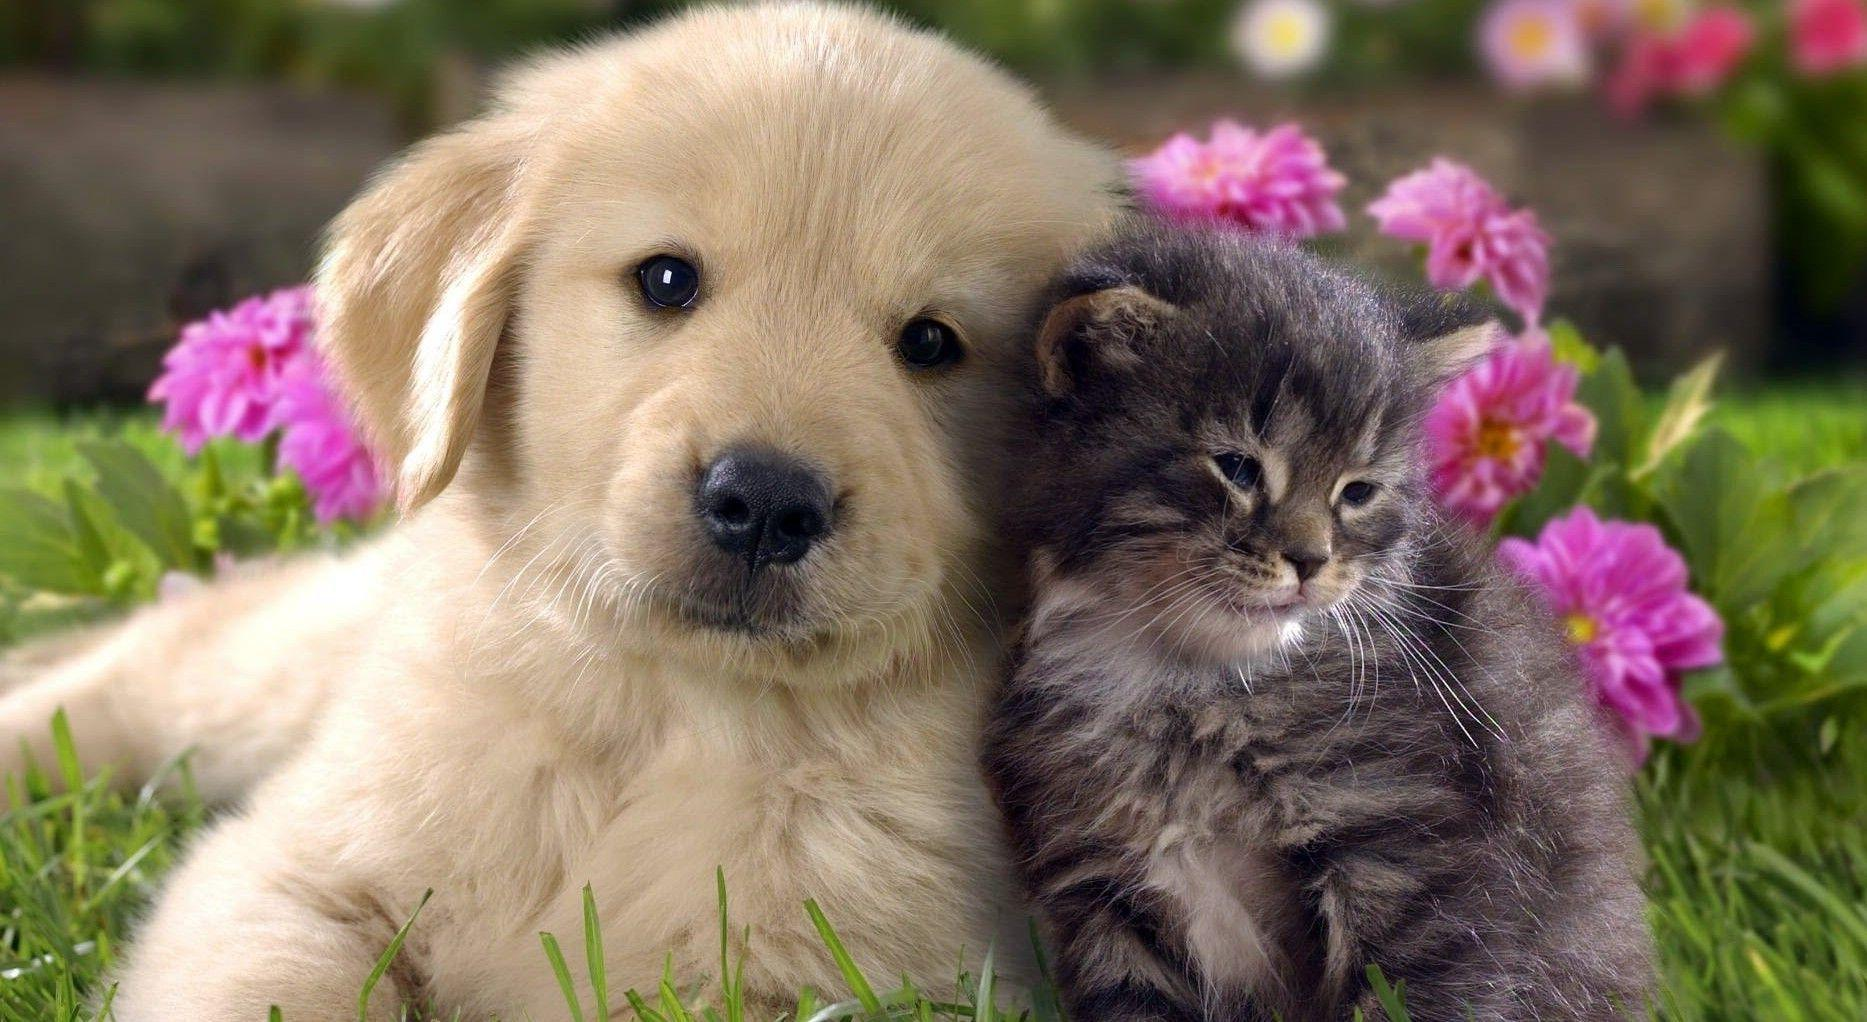 Cat And Dog Desktop Backgrounds Picture, Wallpapers, HD Wallpapers